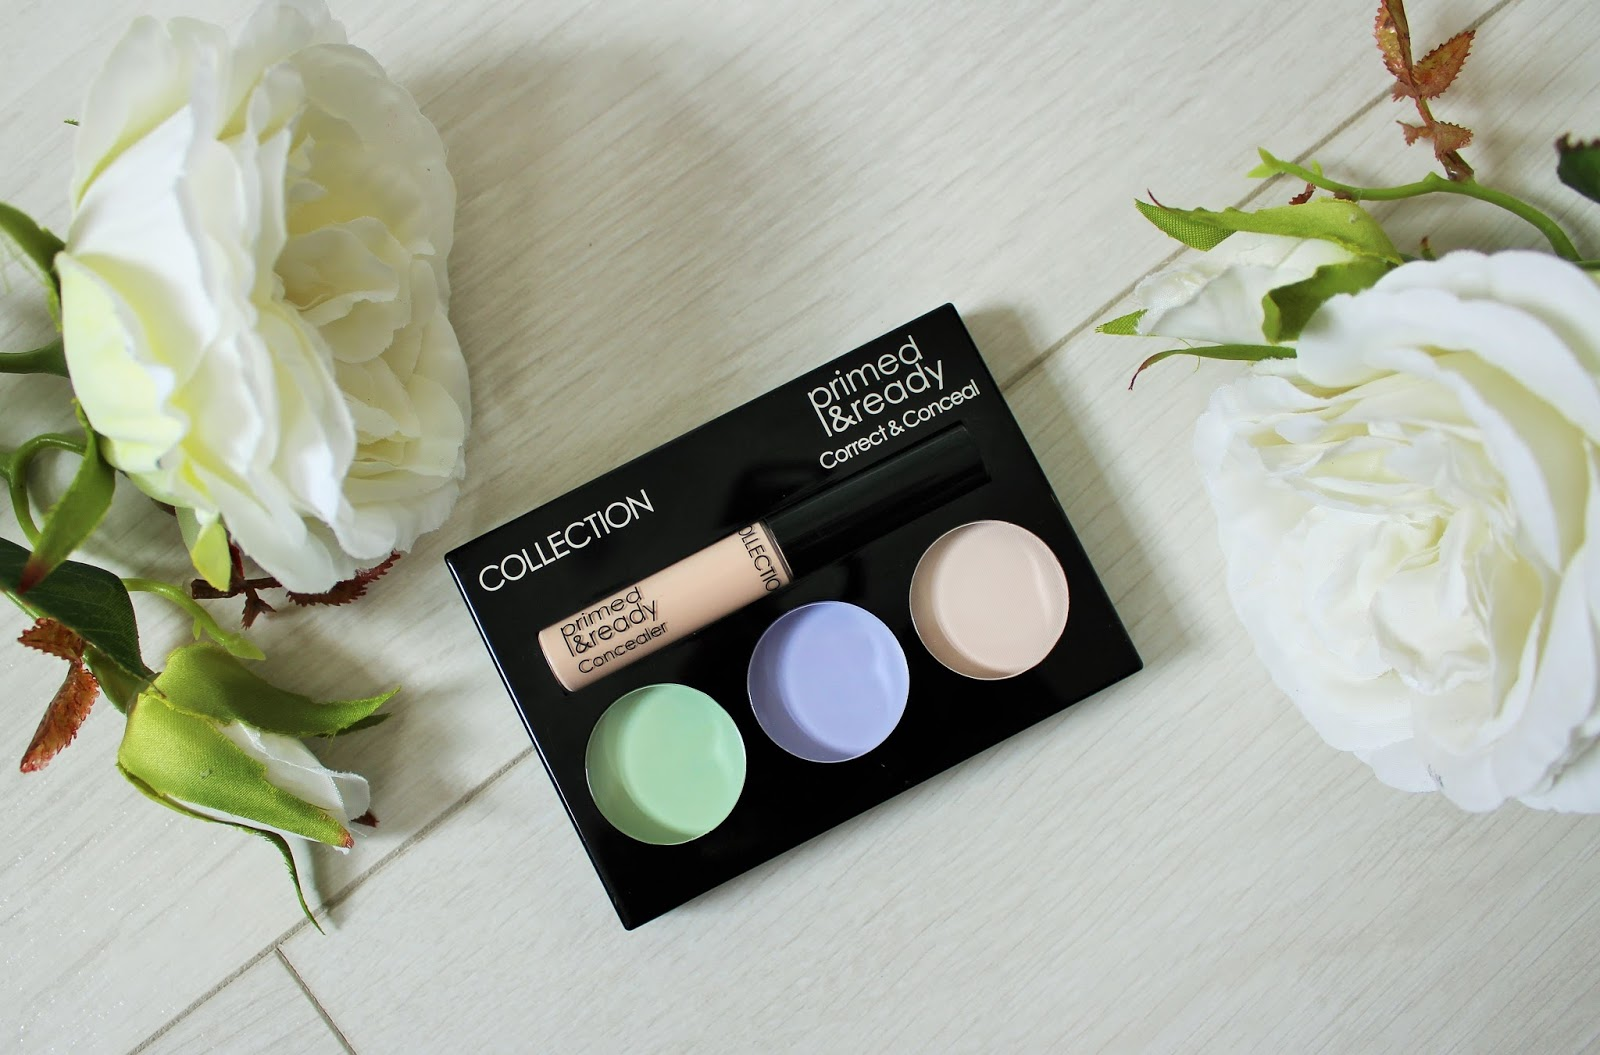 Collection Primed & Ready Correct & Conceal Palette Review - 1